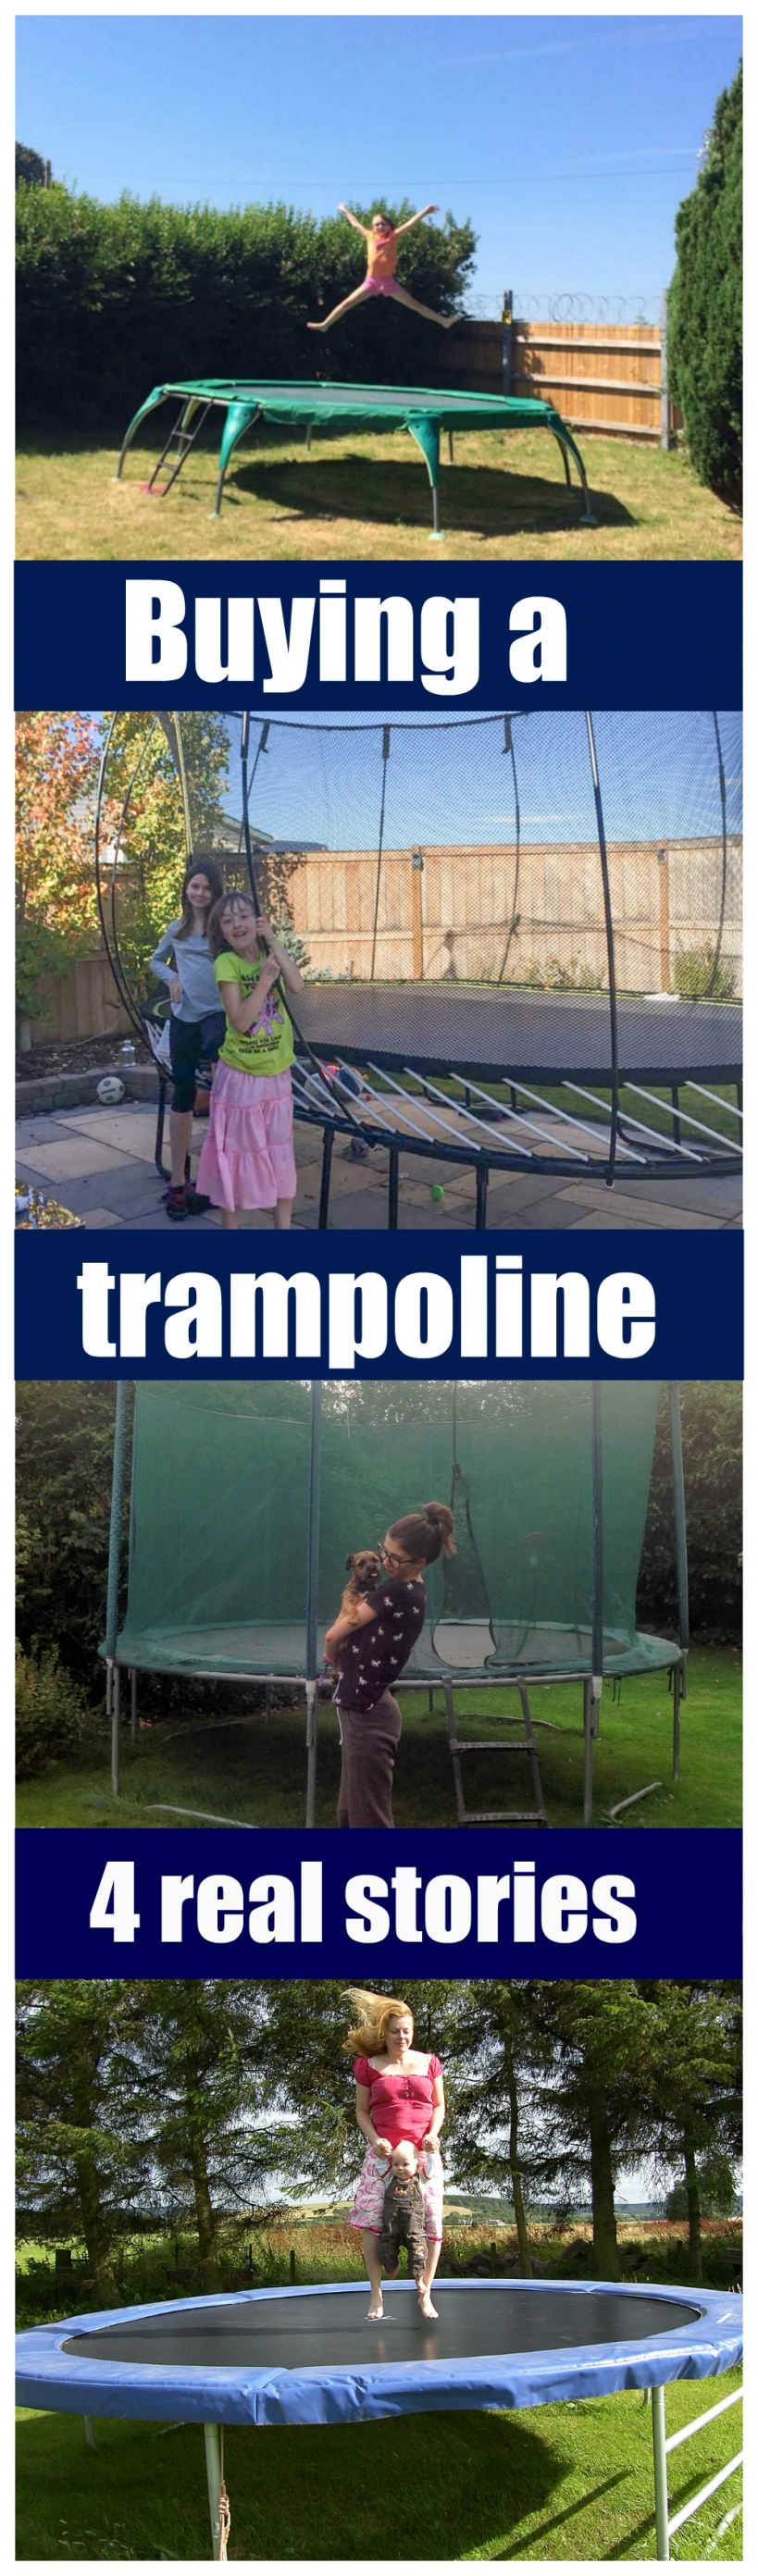 trampolinecollage2